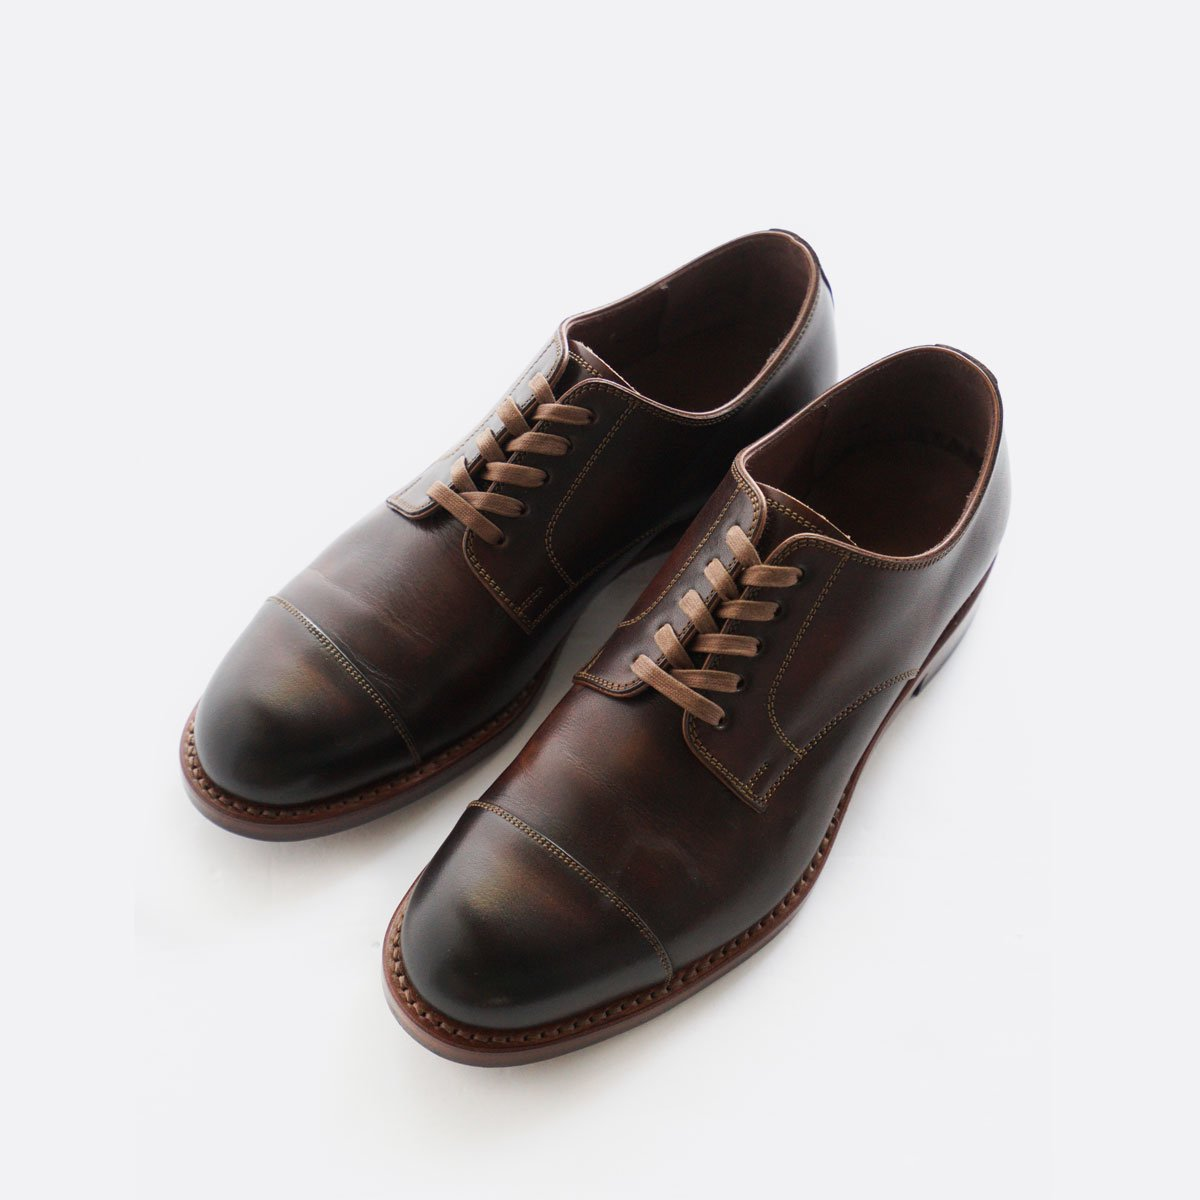 LEATHER&SILVER MOTO STRAIGHT TIP OXFORD SHOES #2900 (BROWN)3